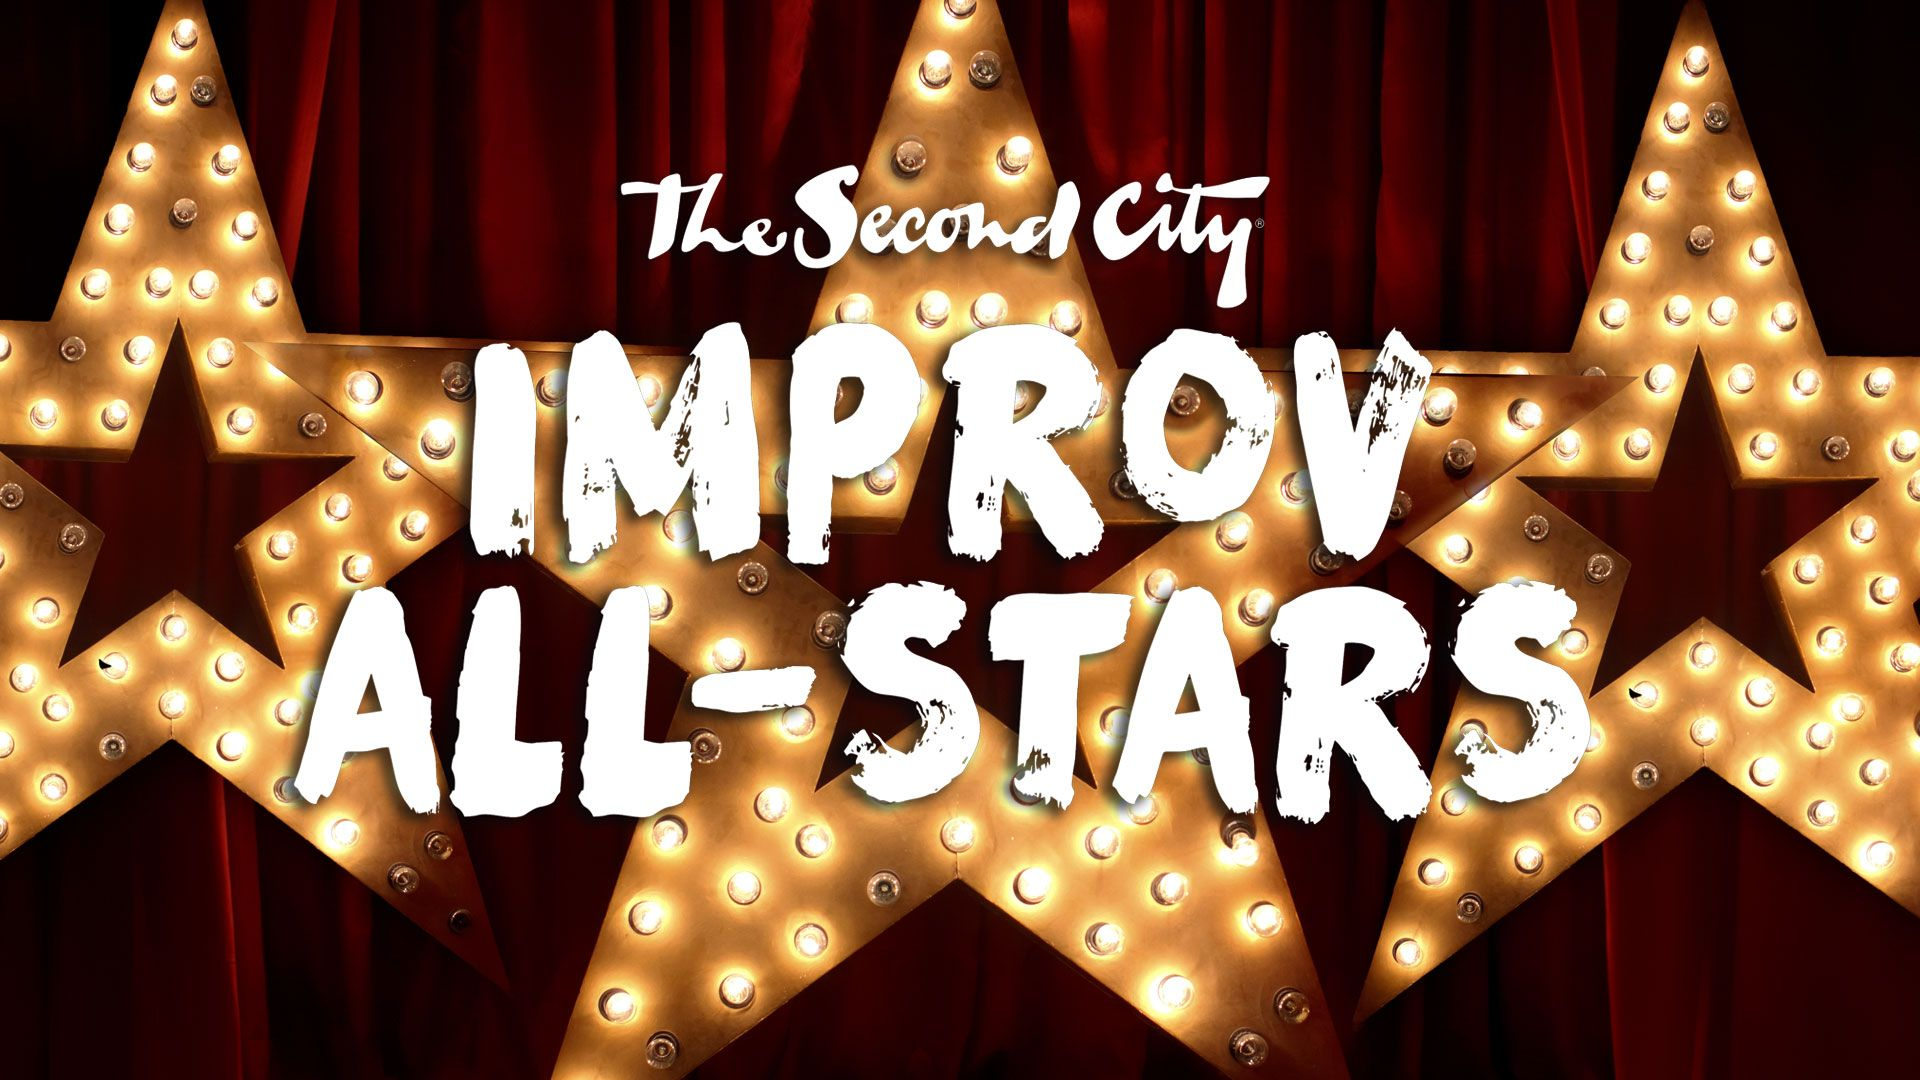 second city comedy club tickets from 10 for shows free 1 hour improv - Christmas Shows In Chicago